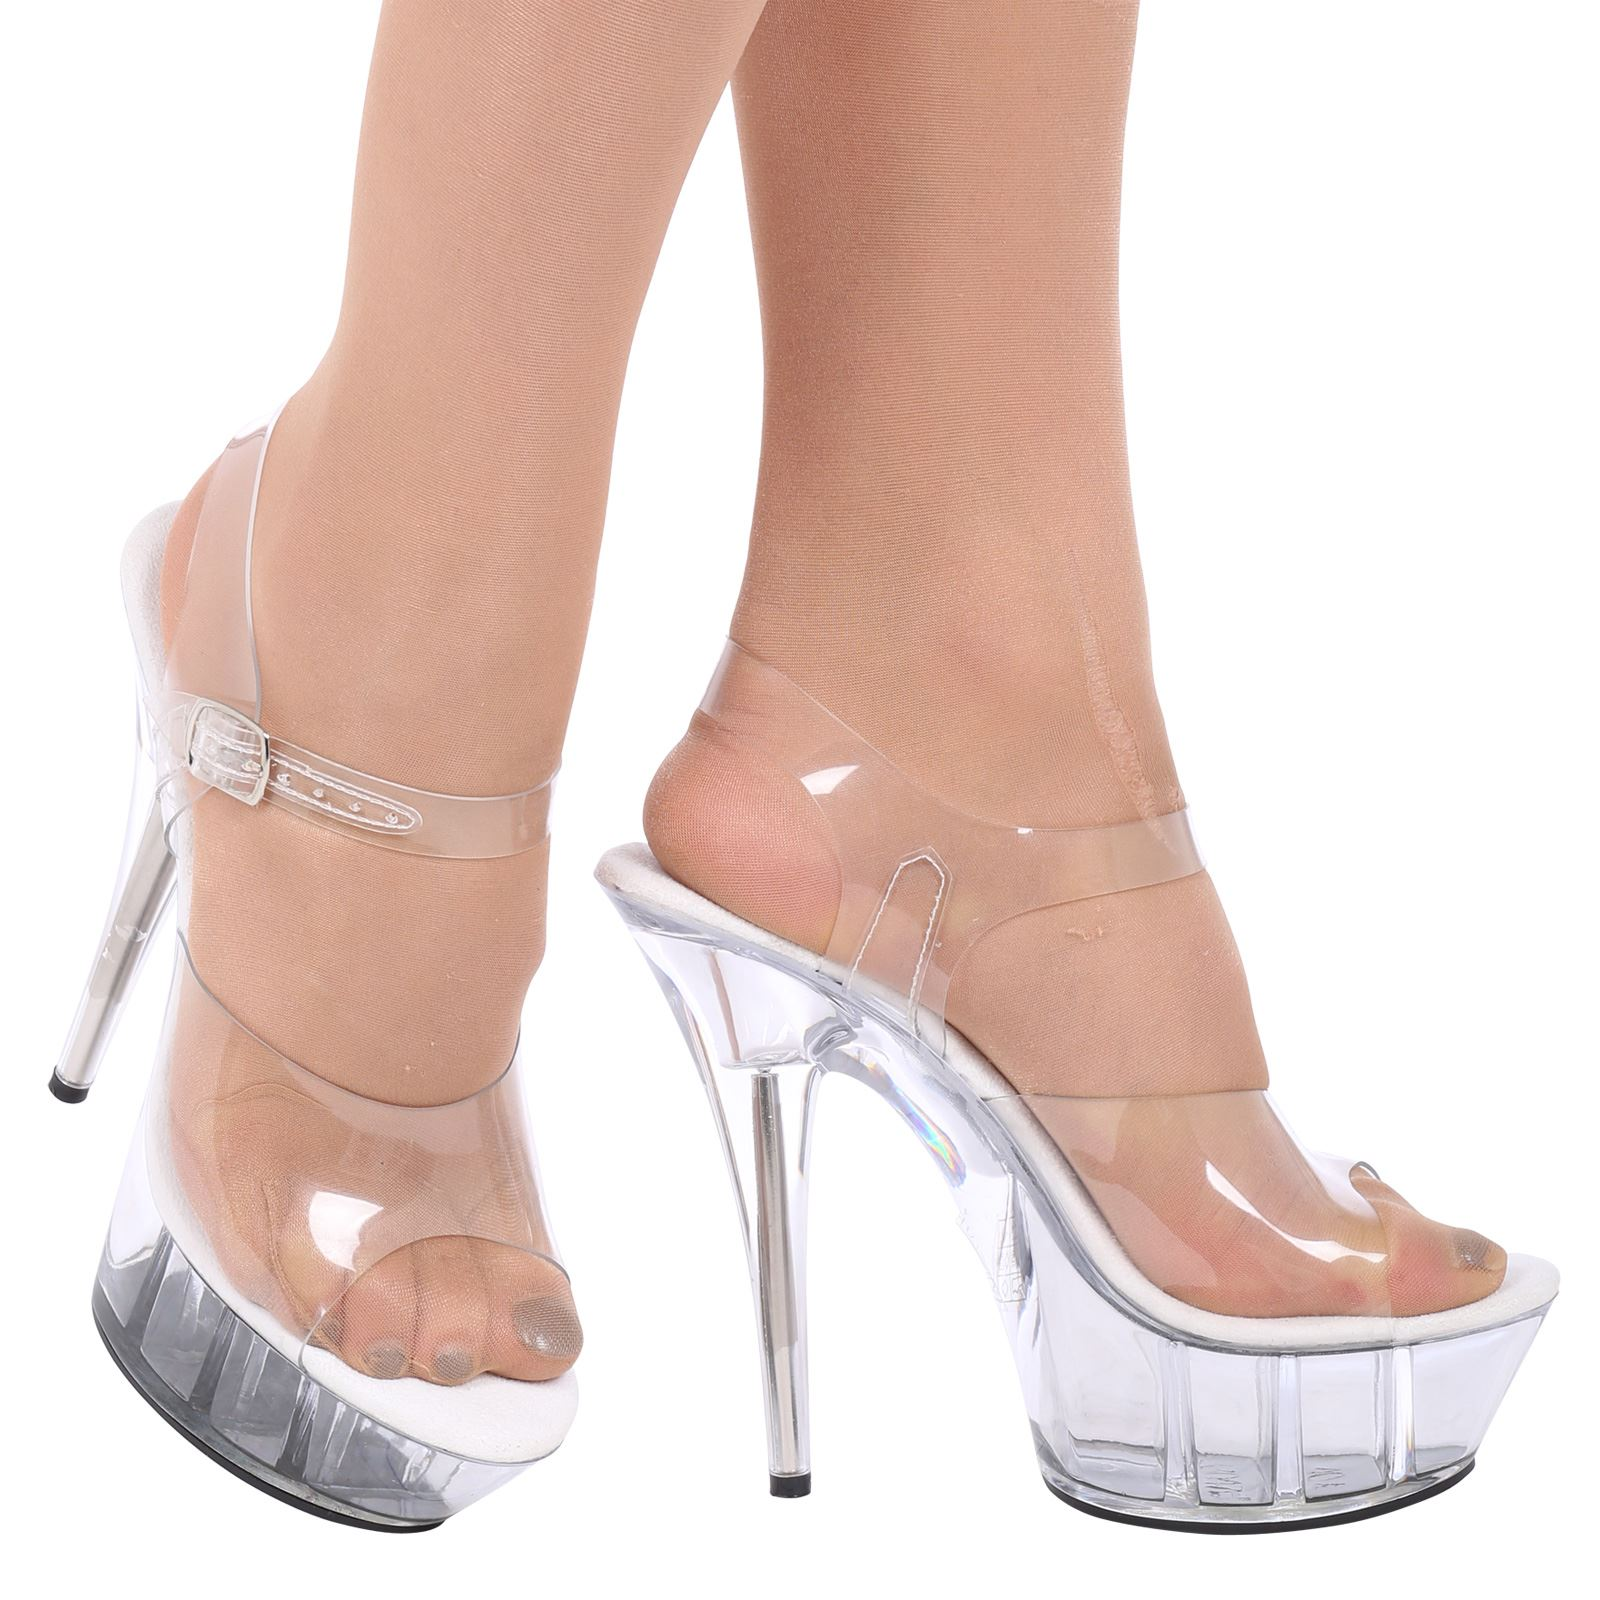 charmaine womens clear stilettos high heels platforms ladies sandals shoes size ebay. Black Bedroom Furniture Sets. Home Design Ideas